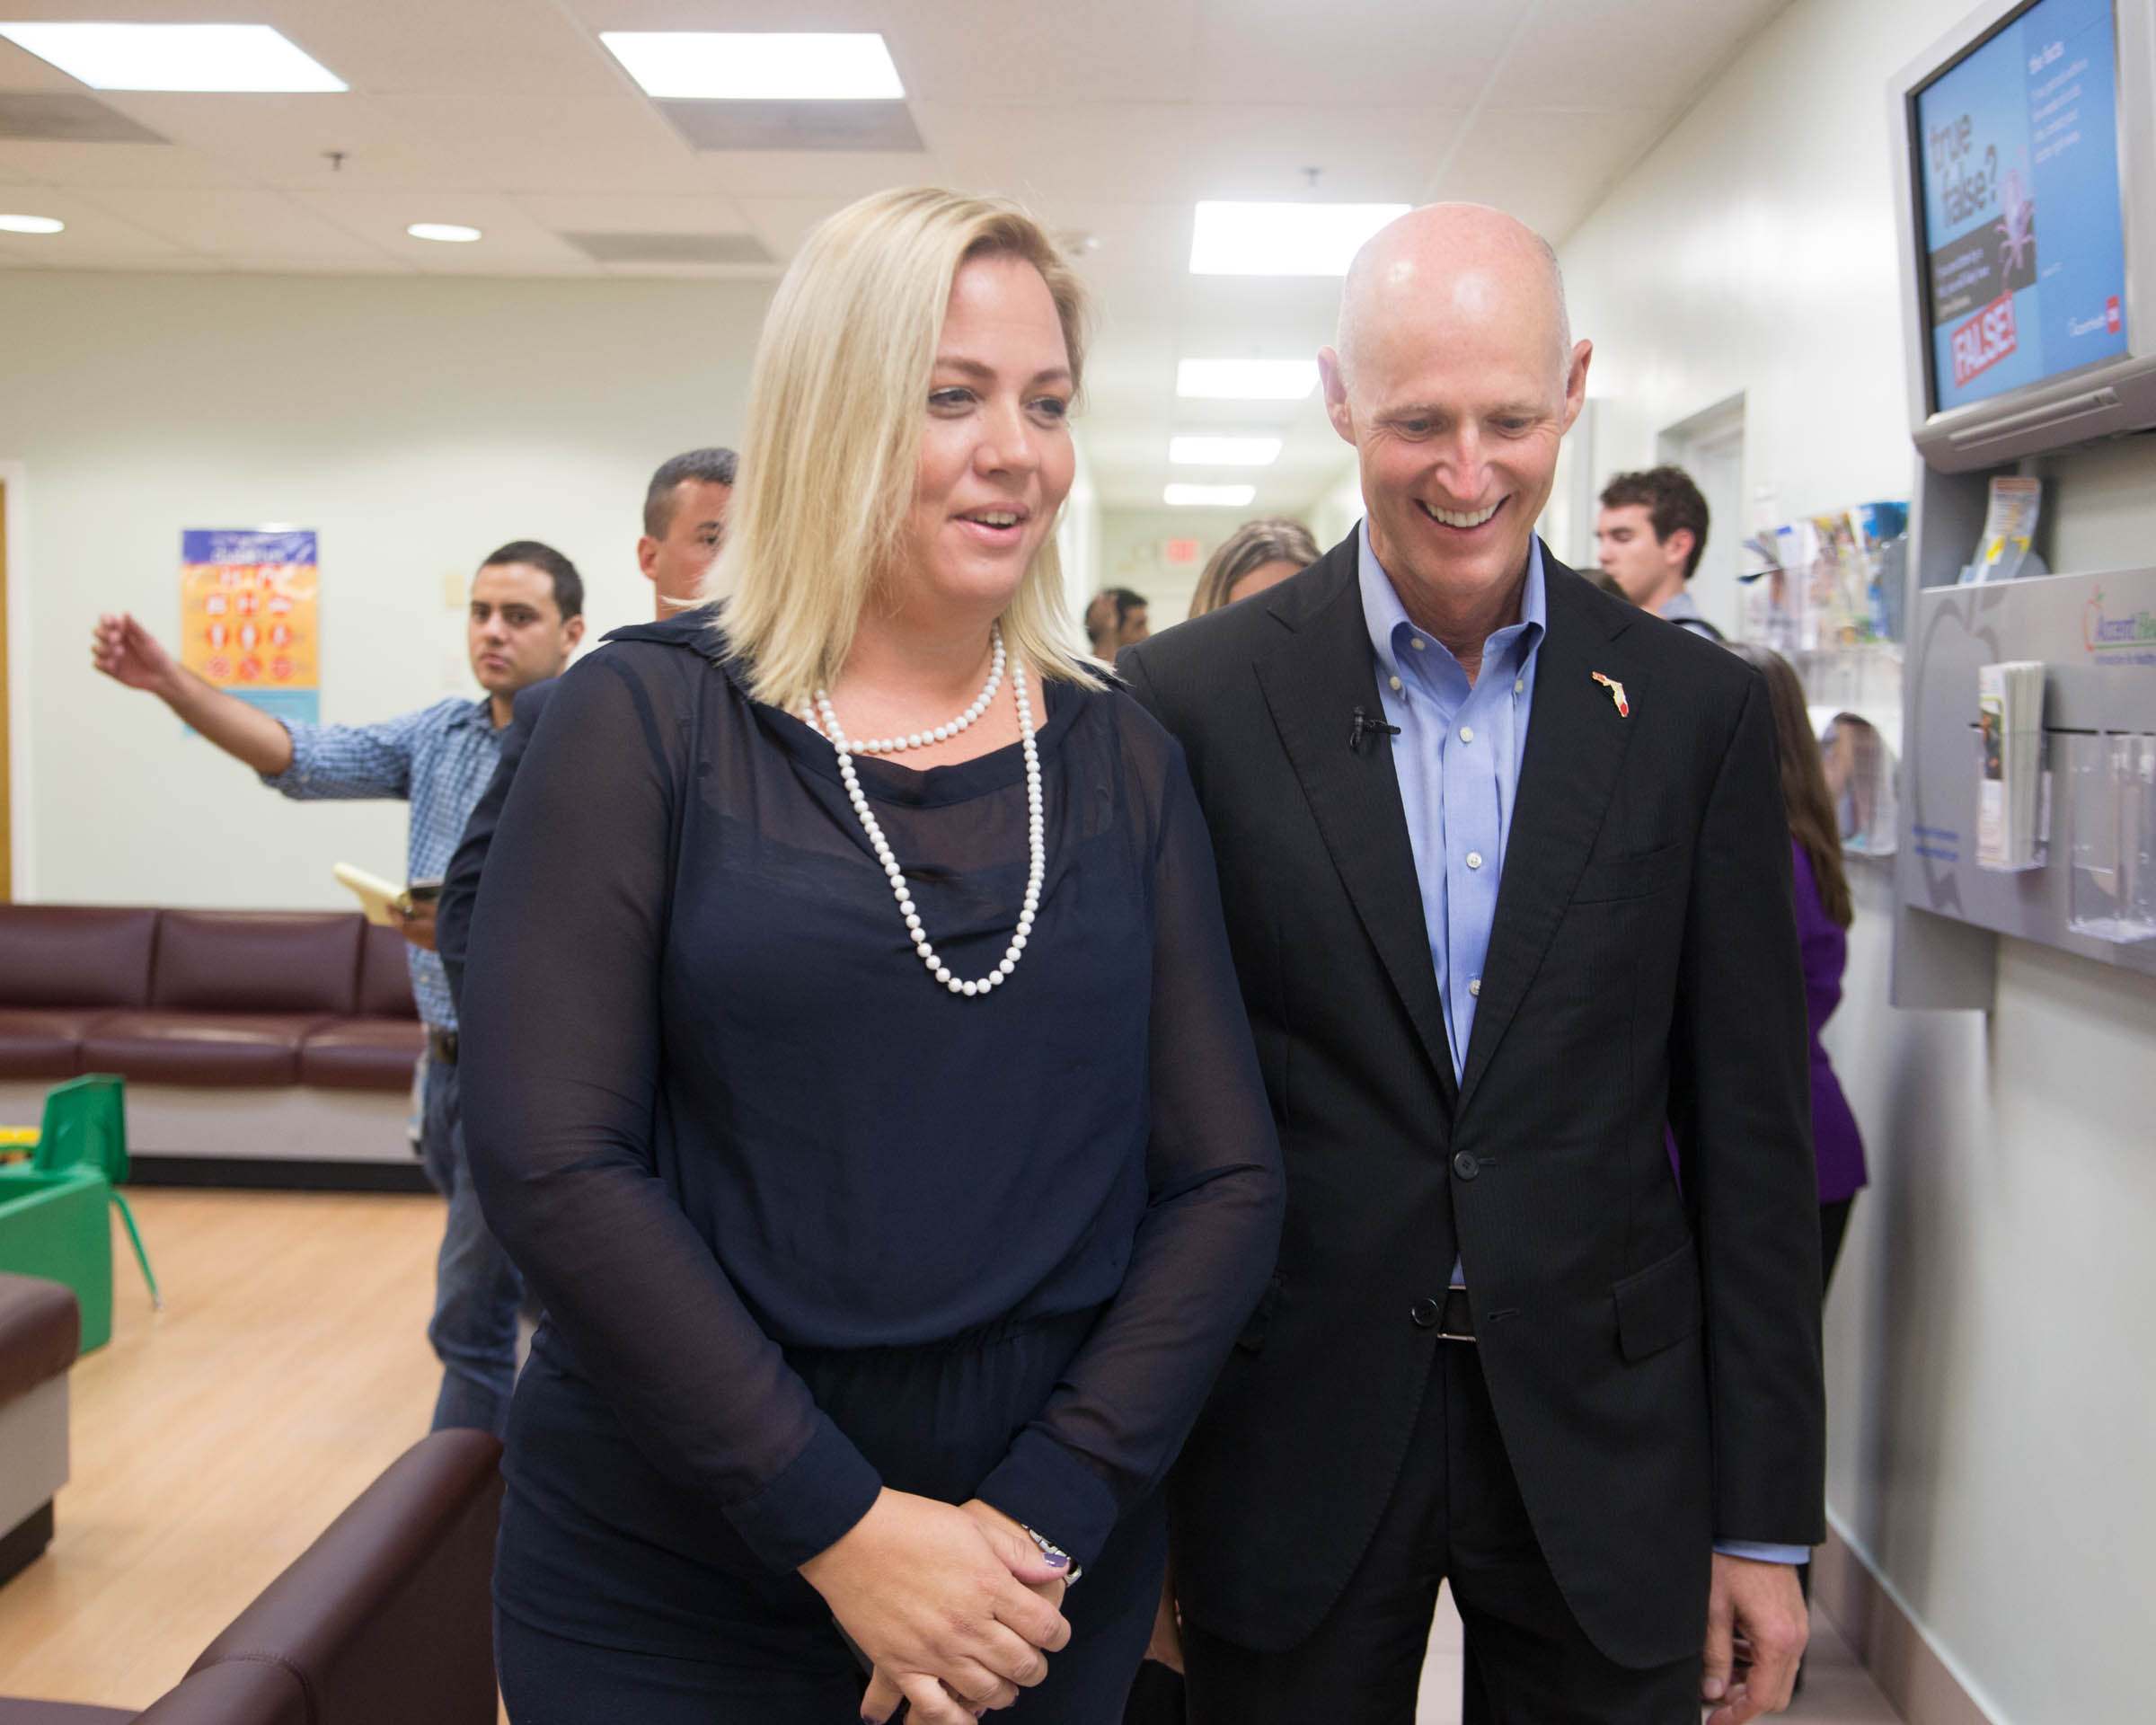 Founder THFM & Survivor Leader Dr. Katariina Rosenblatt with FLA Gov. Rick Scott